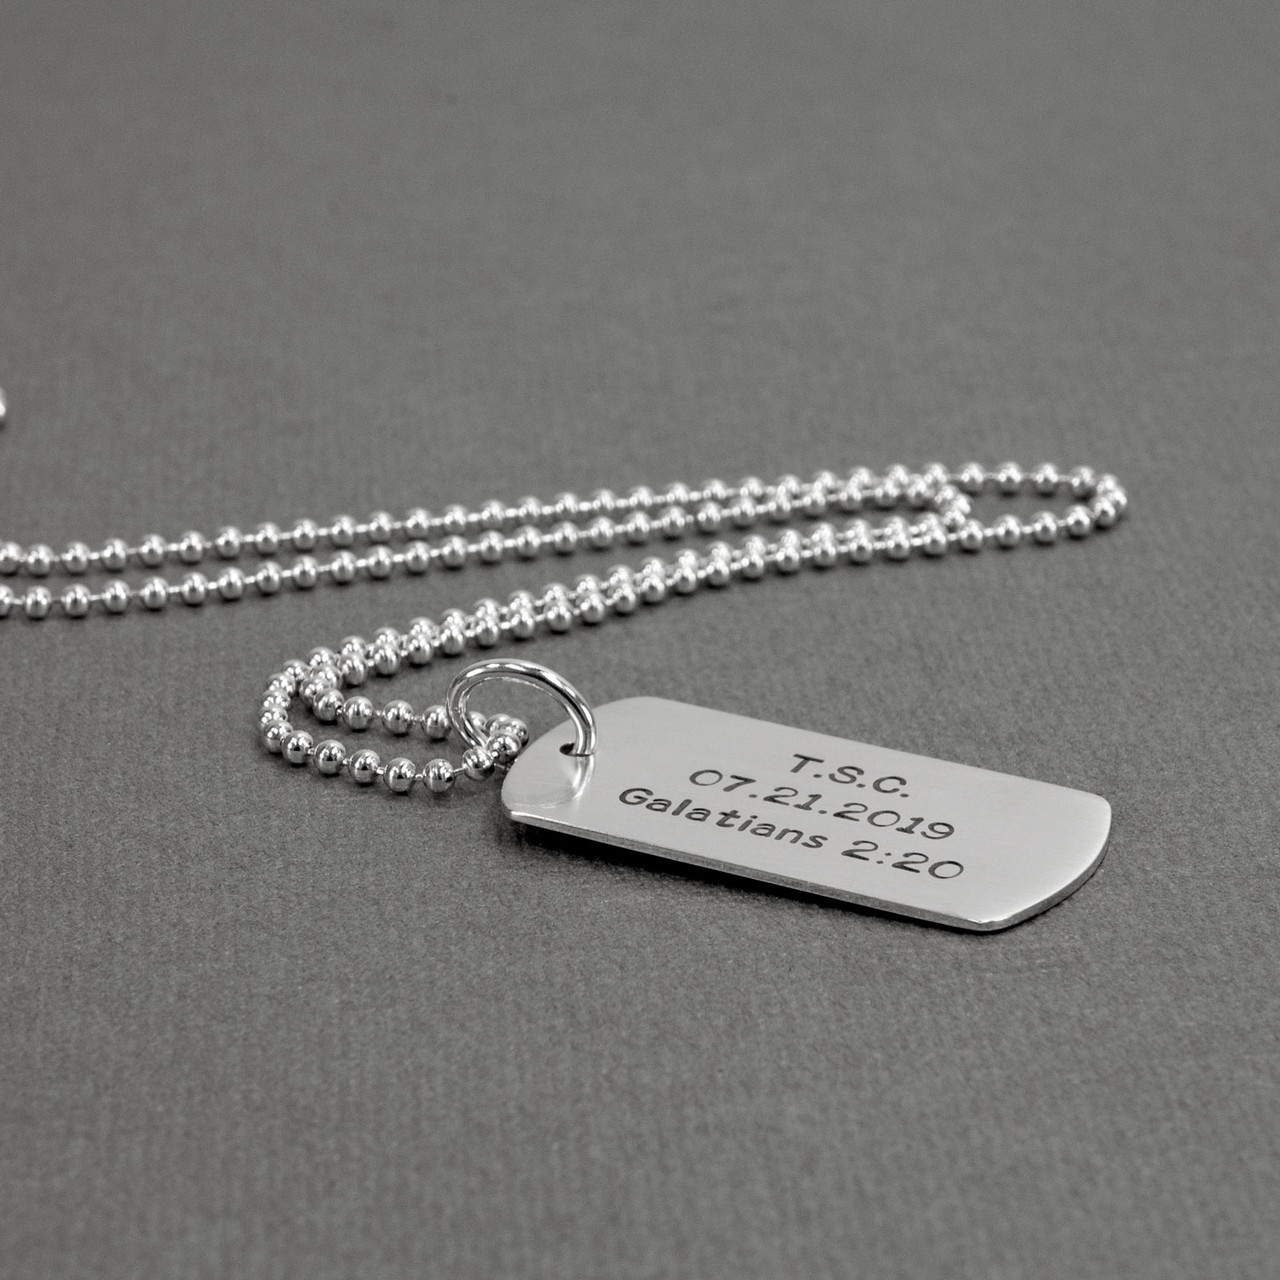 Custom hand stamped sterling silver military dog tag, personalized with names or phrases, shown from the side